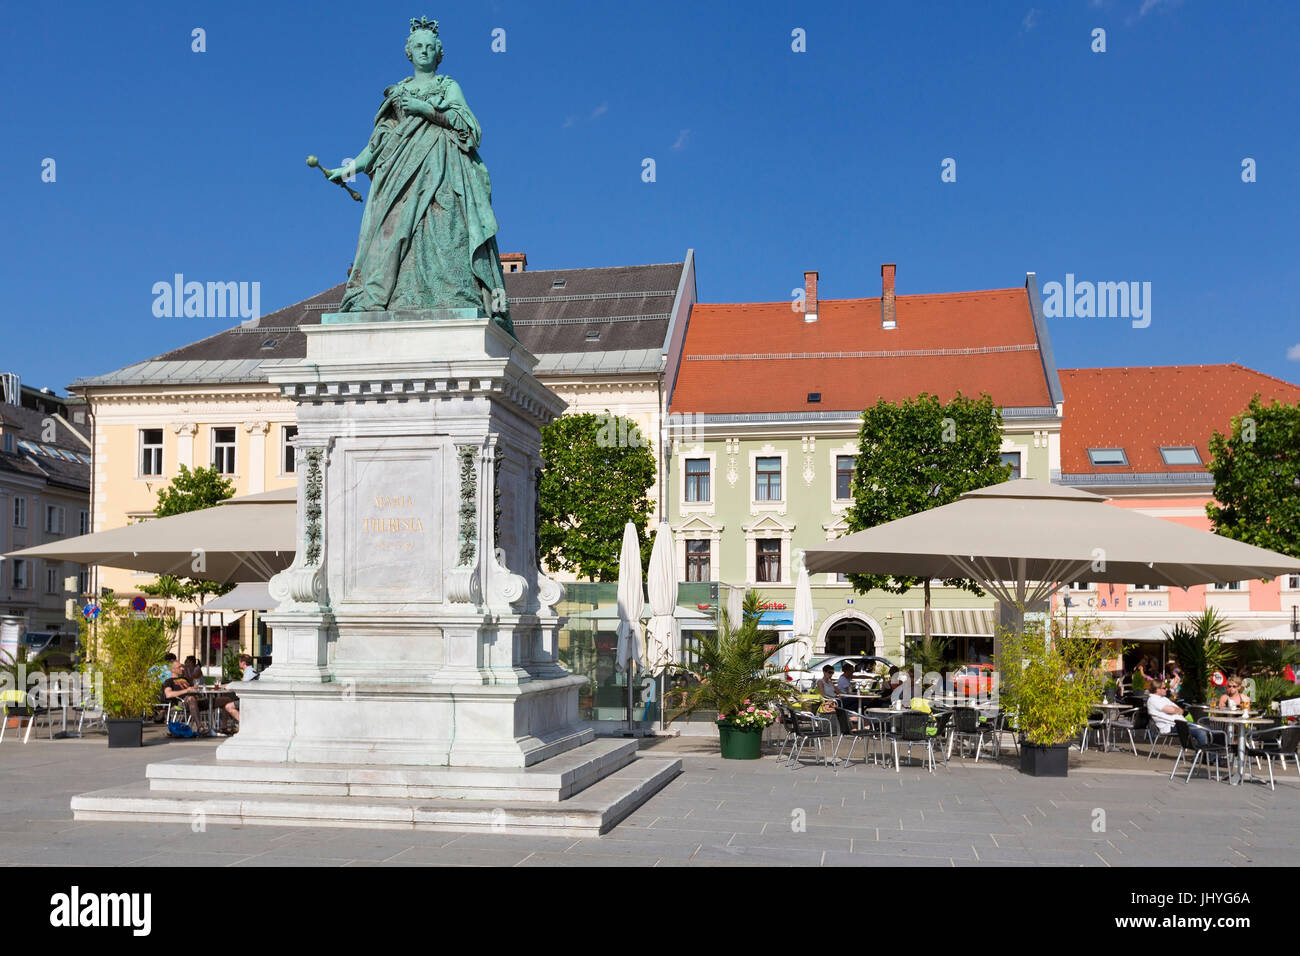 Maria Theresia statue, Klagenfurt, new place, Carinthia, Austria - statue of Maria Theresia on new place Square - Stock Image